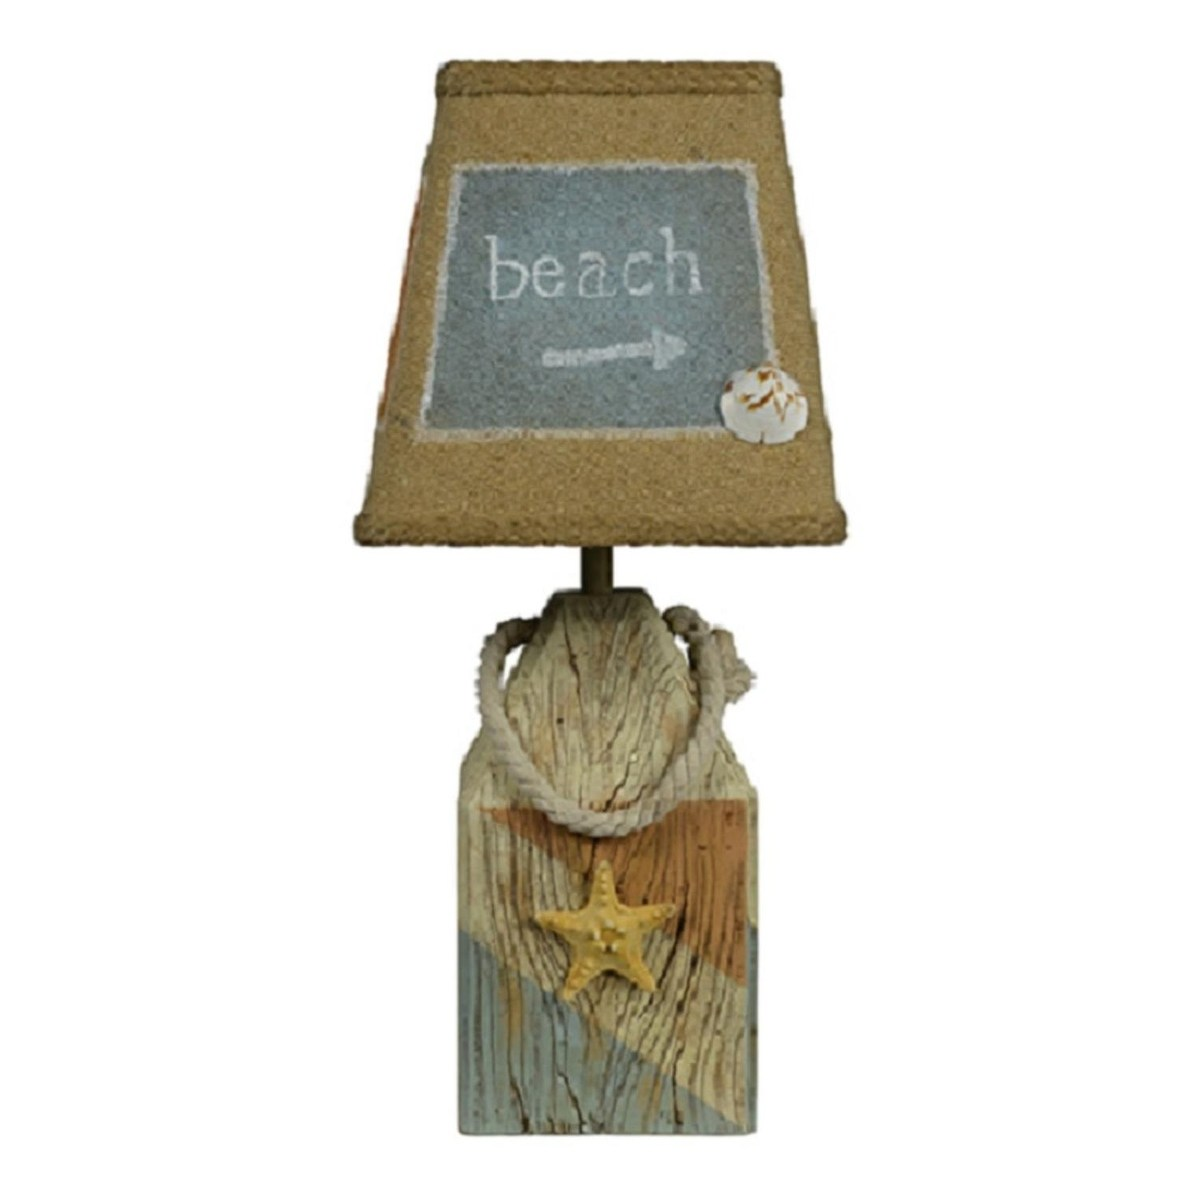 set nautical starfish and shell accent table lamp with white burlap shade lamps brown free shipping today clearance deck furniture monarch hall console inch home decor stuff ikea